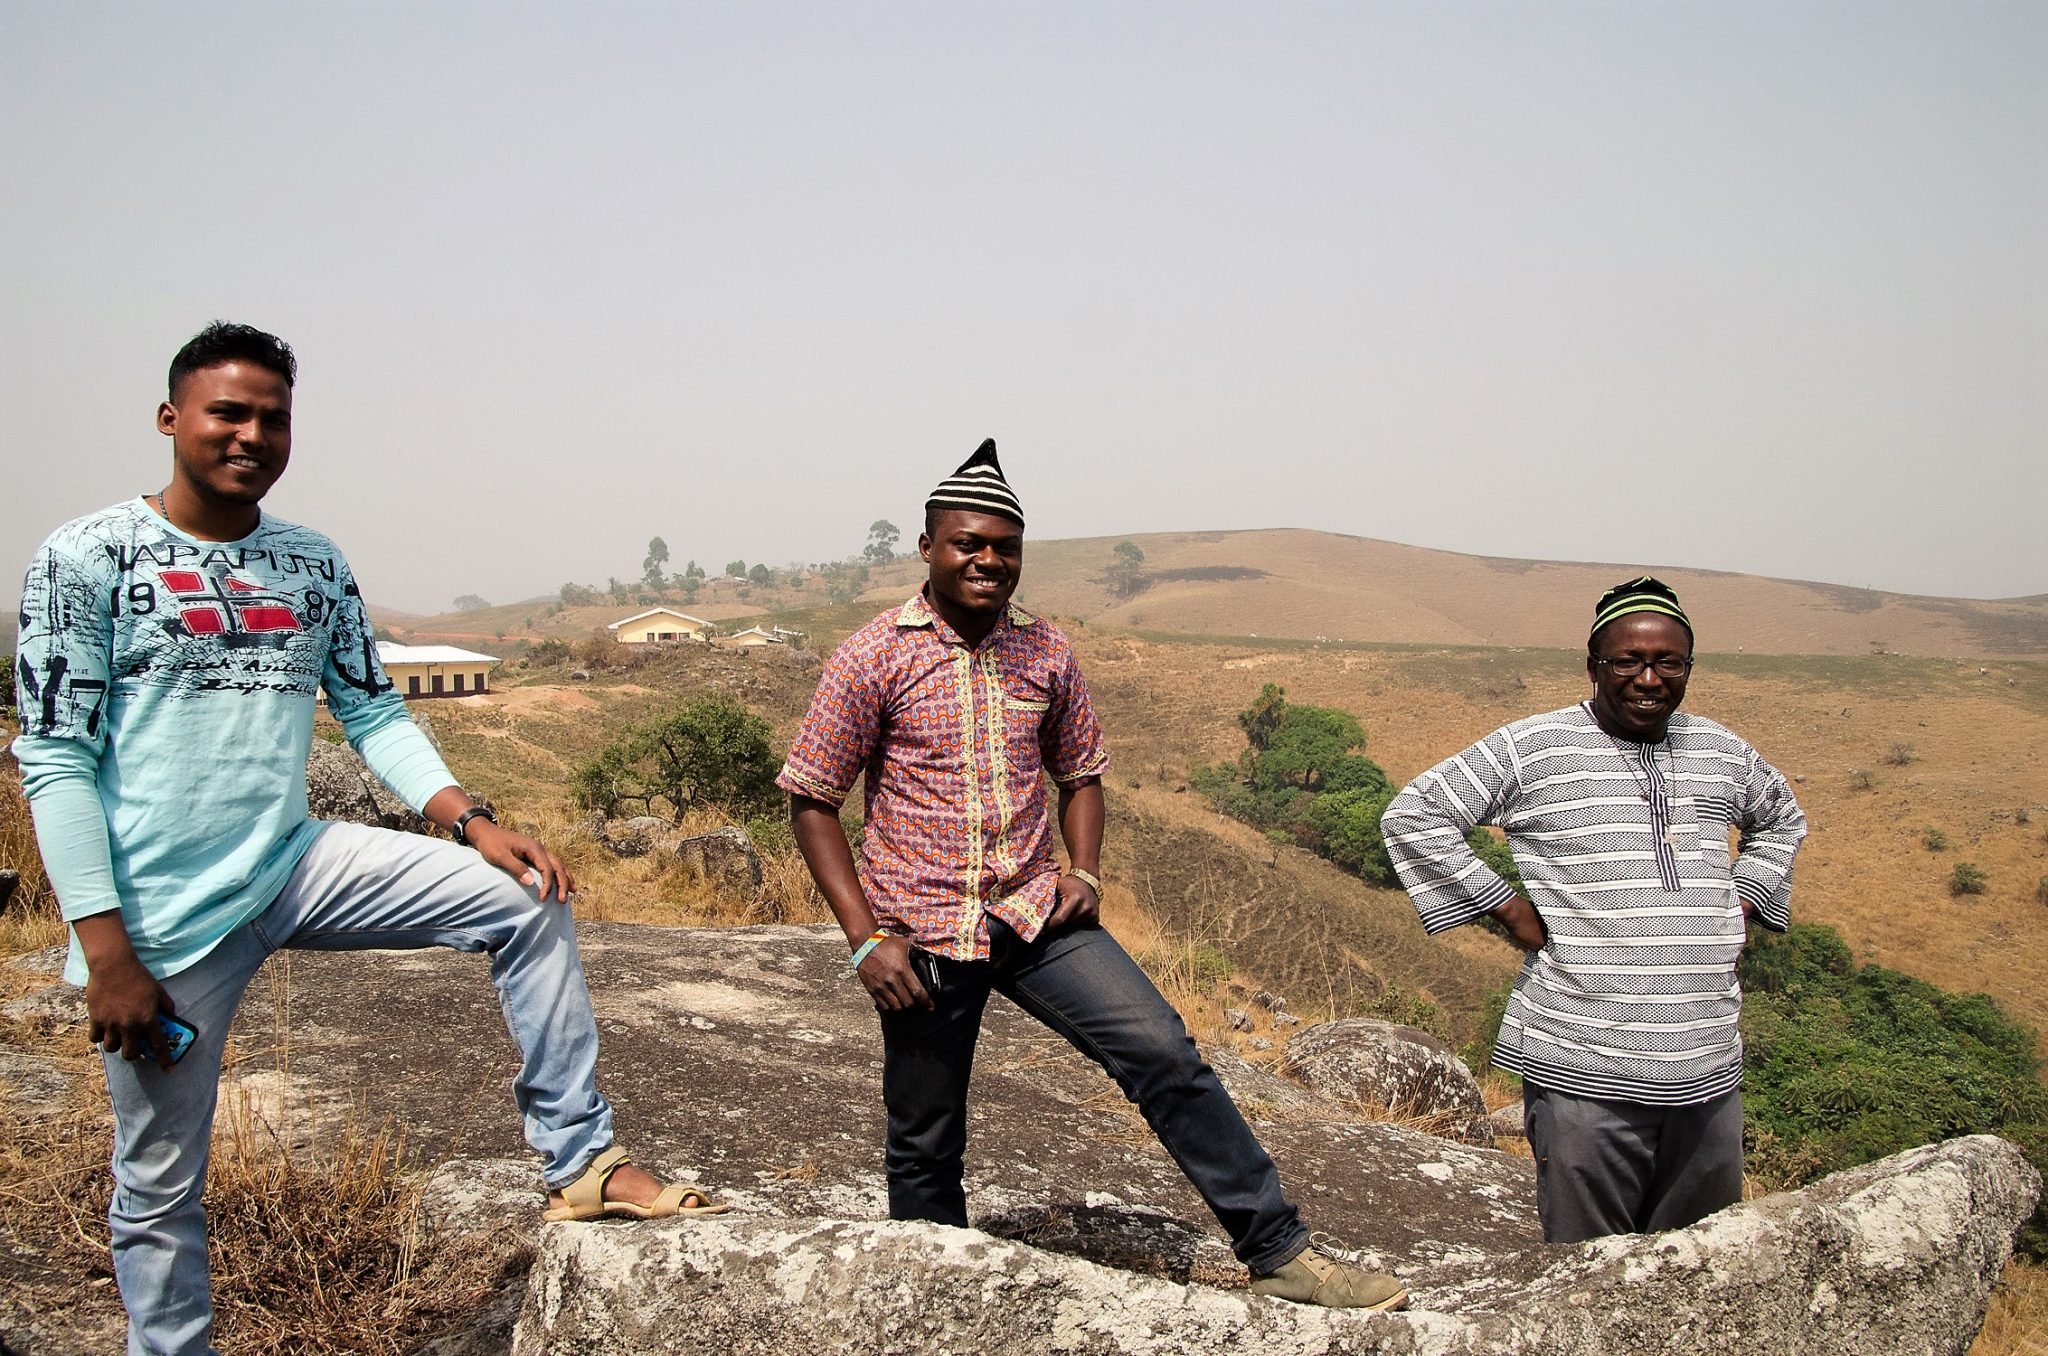 Cameroon: A Student's Mission Experience (MEP)